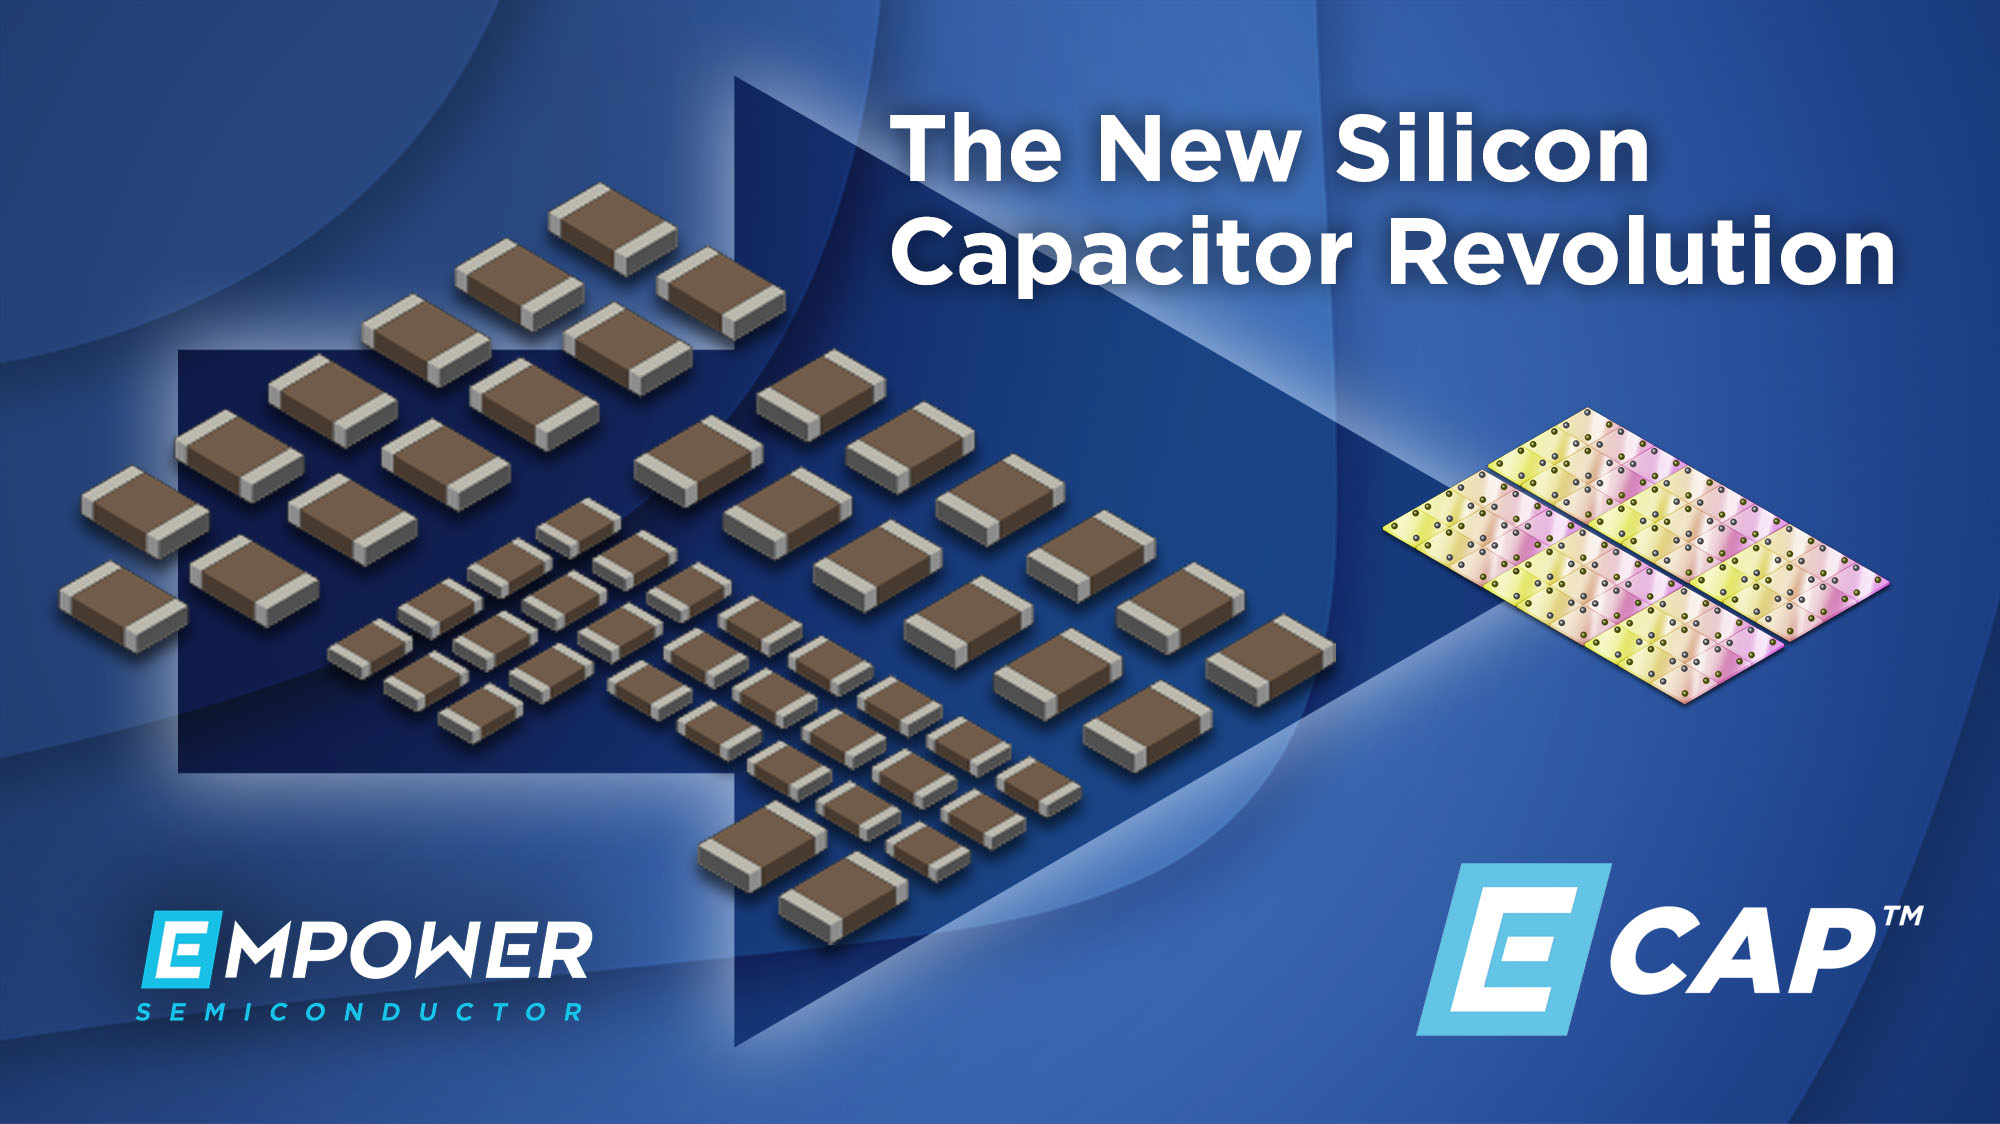 Capacitor Technology is High-Performing and Configurable